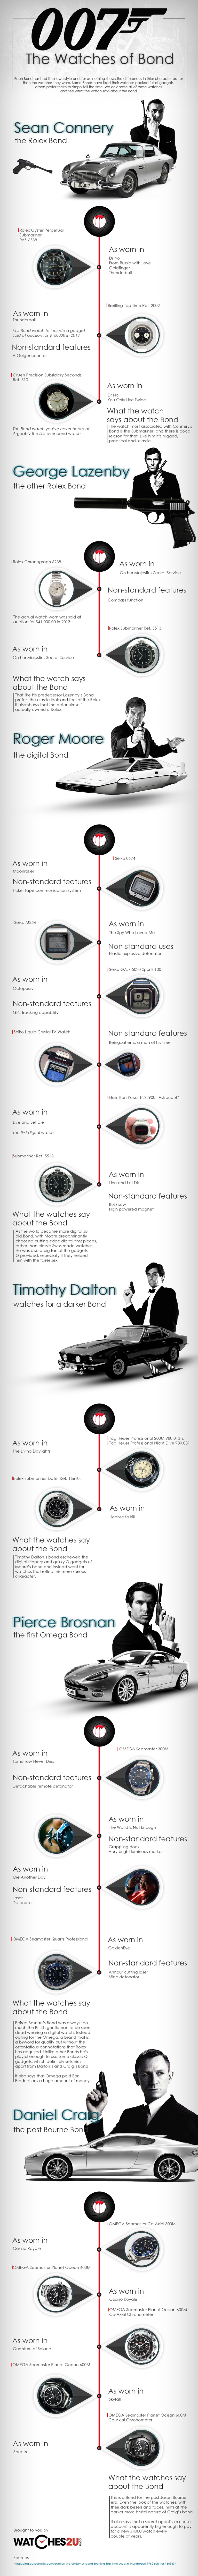 The Watches Of Bond [Infographic]